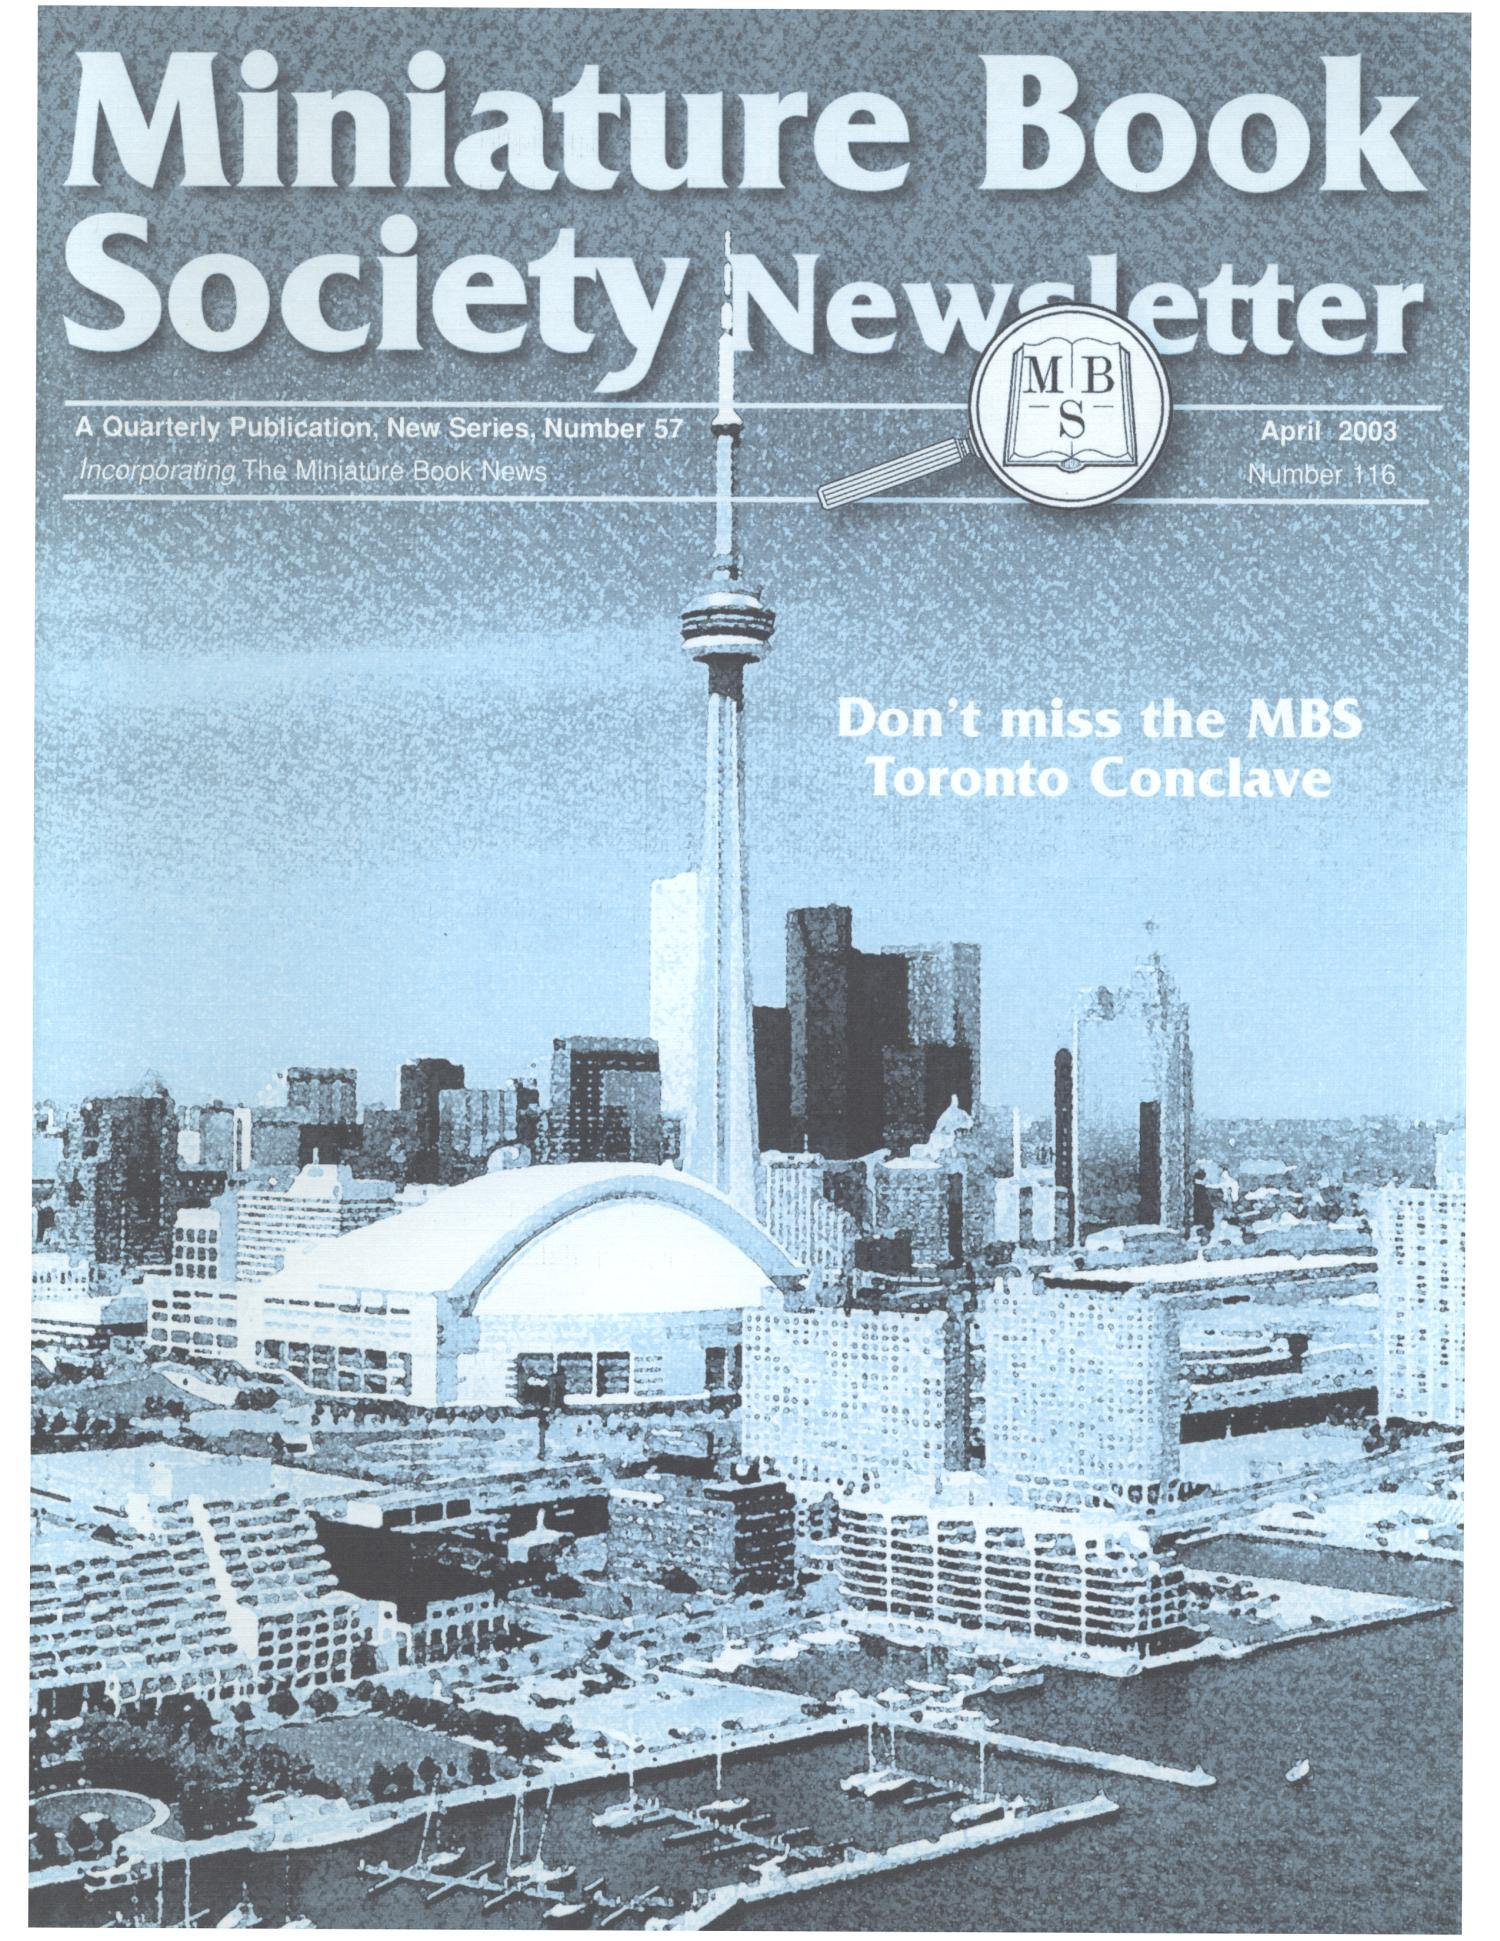 Miniature Book Society Newsletter 2003 April                                                                                                      Front Cover